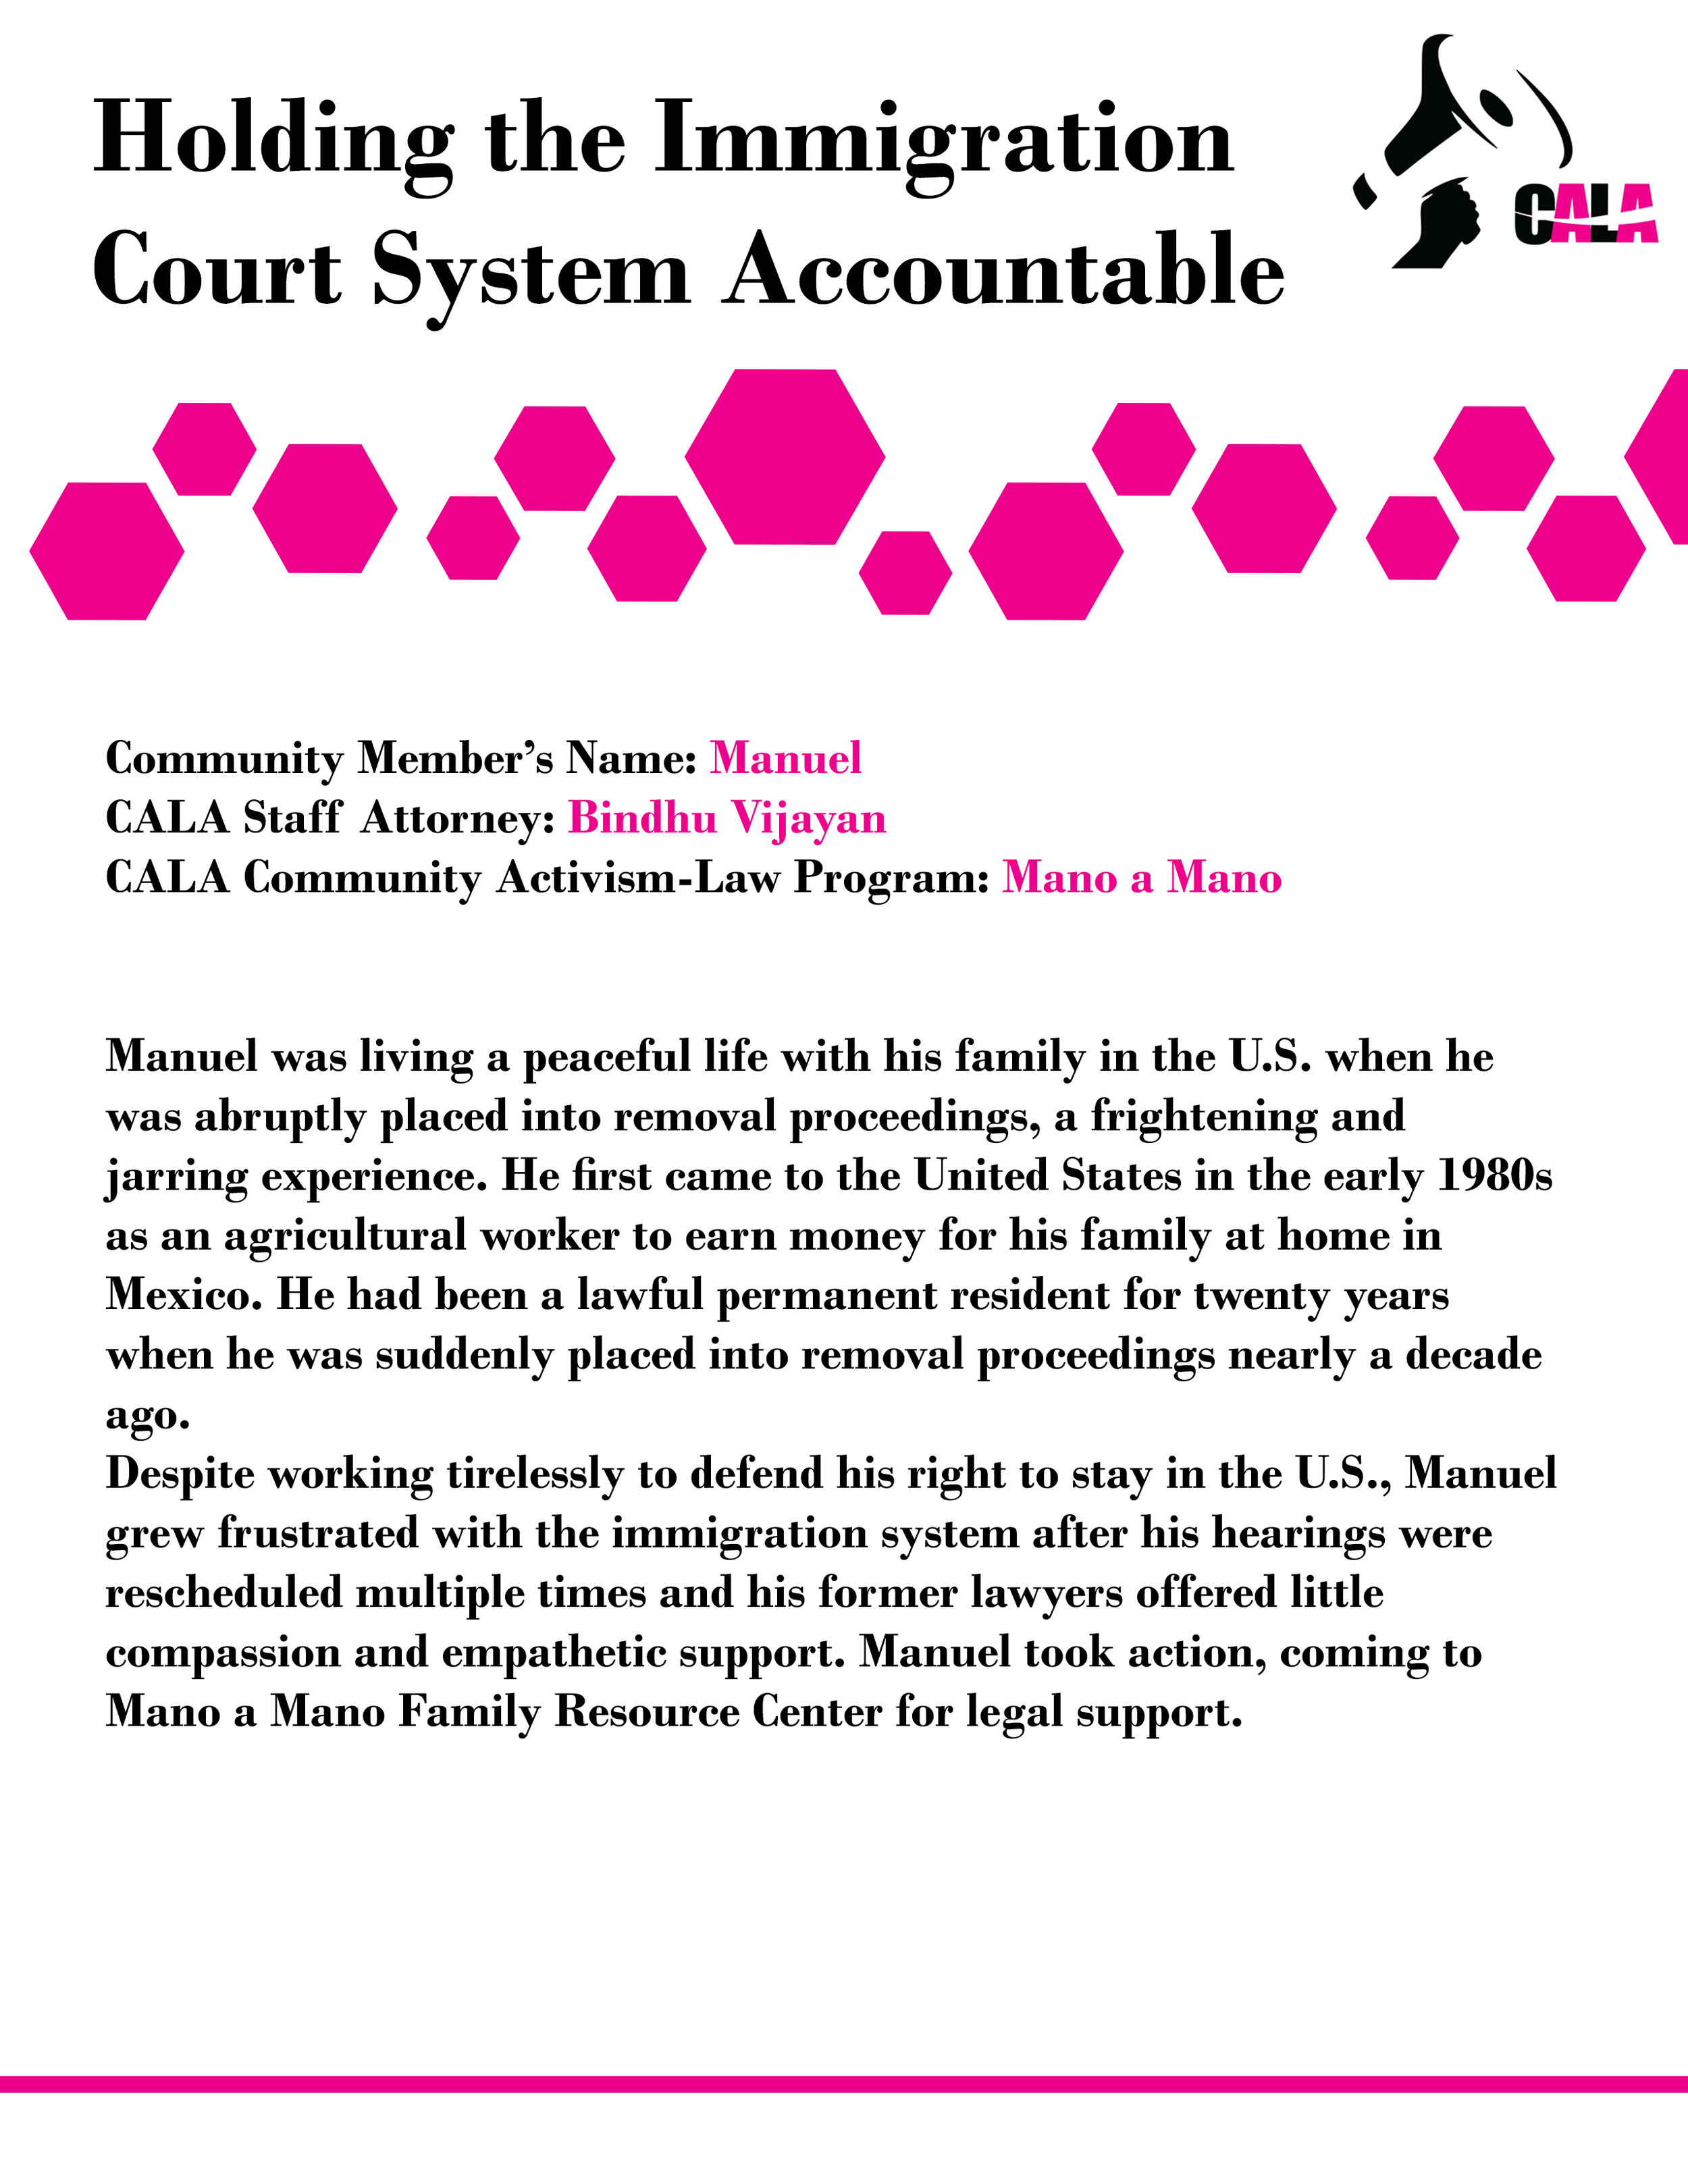 holding the Immigration court system accountable pg 1.jpg